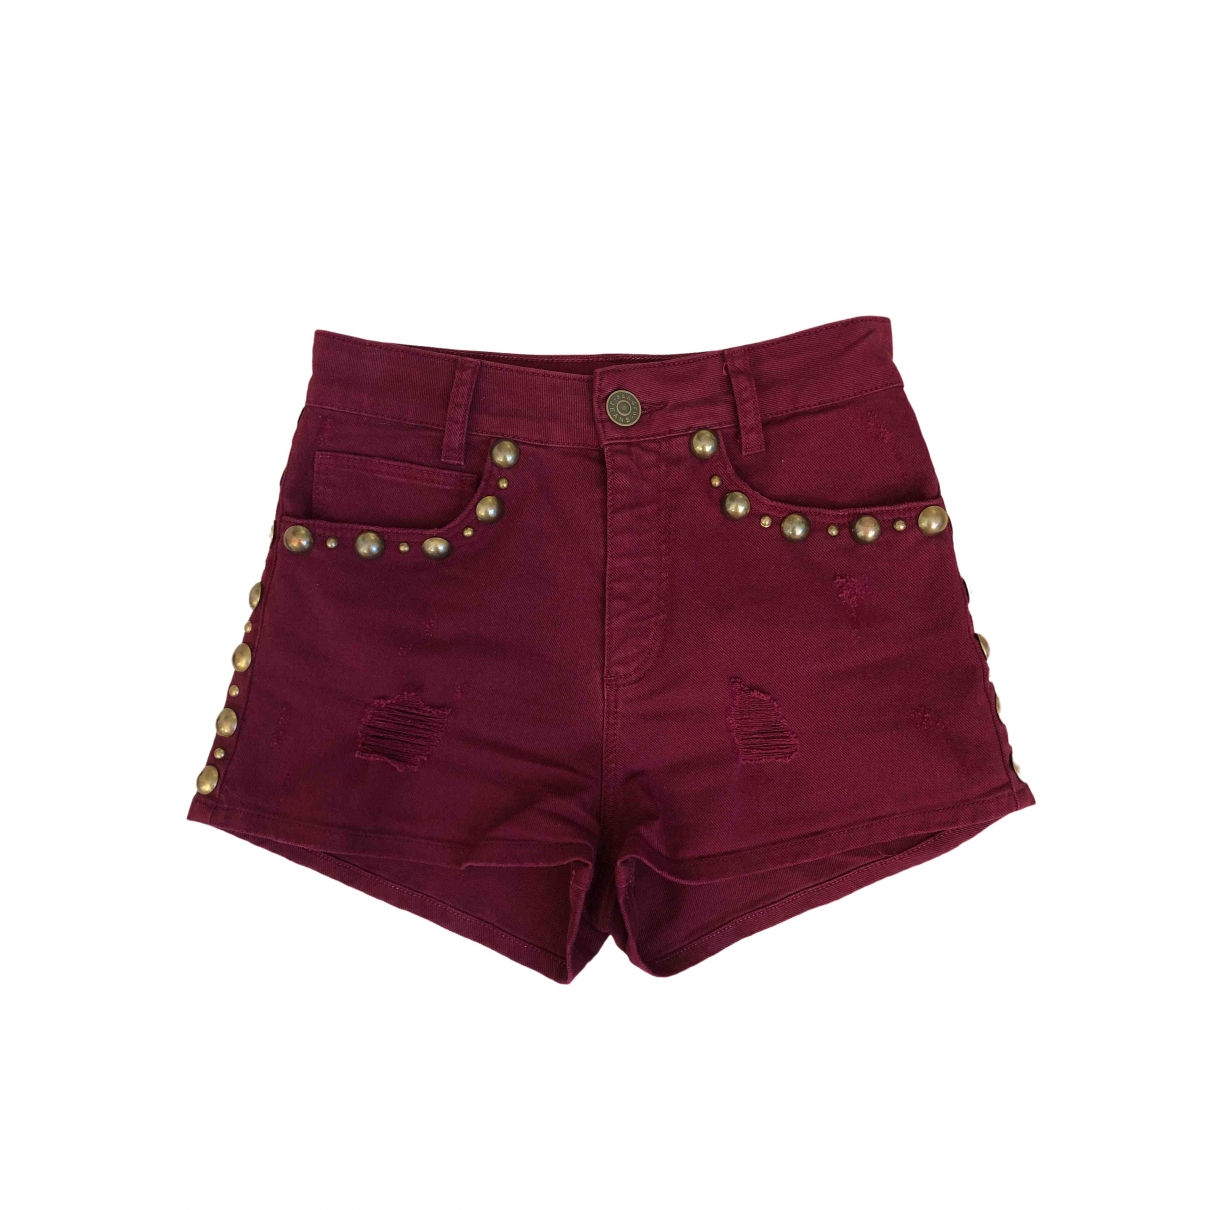 Sandro \N Burgundy Denim - Jeans Shorts for Women 36 FR